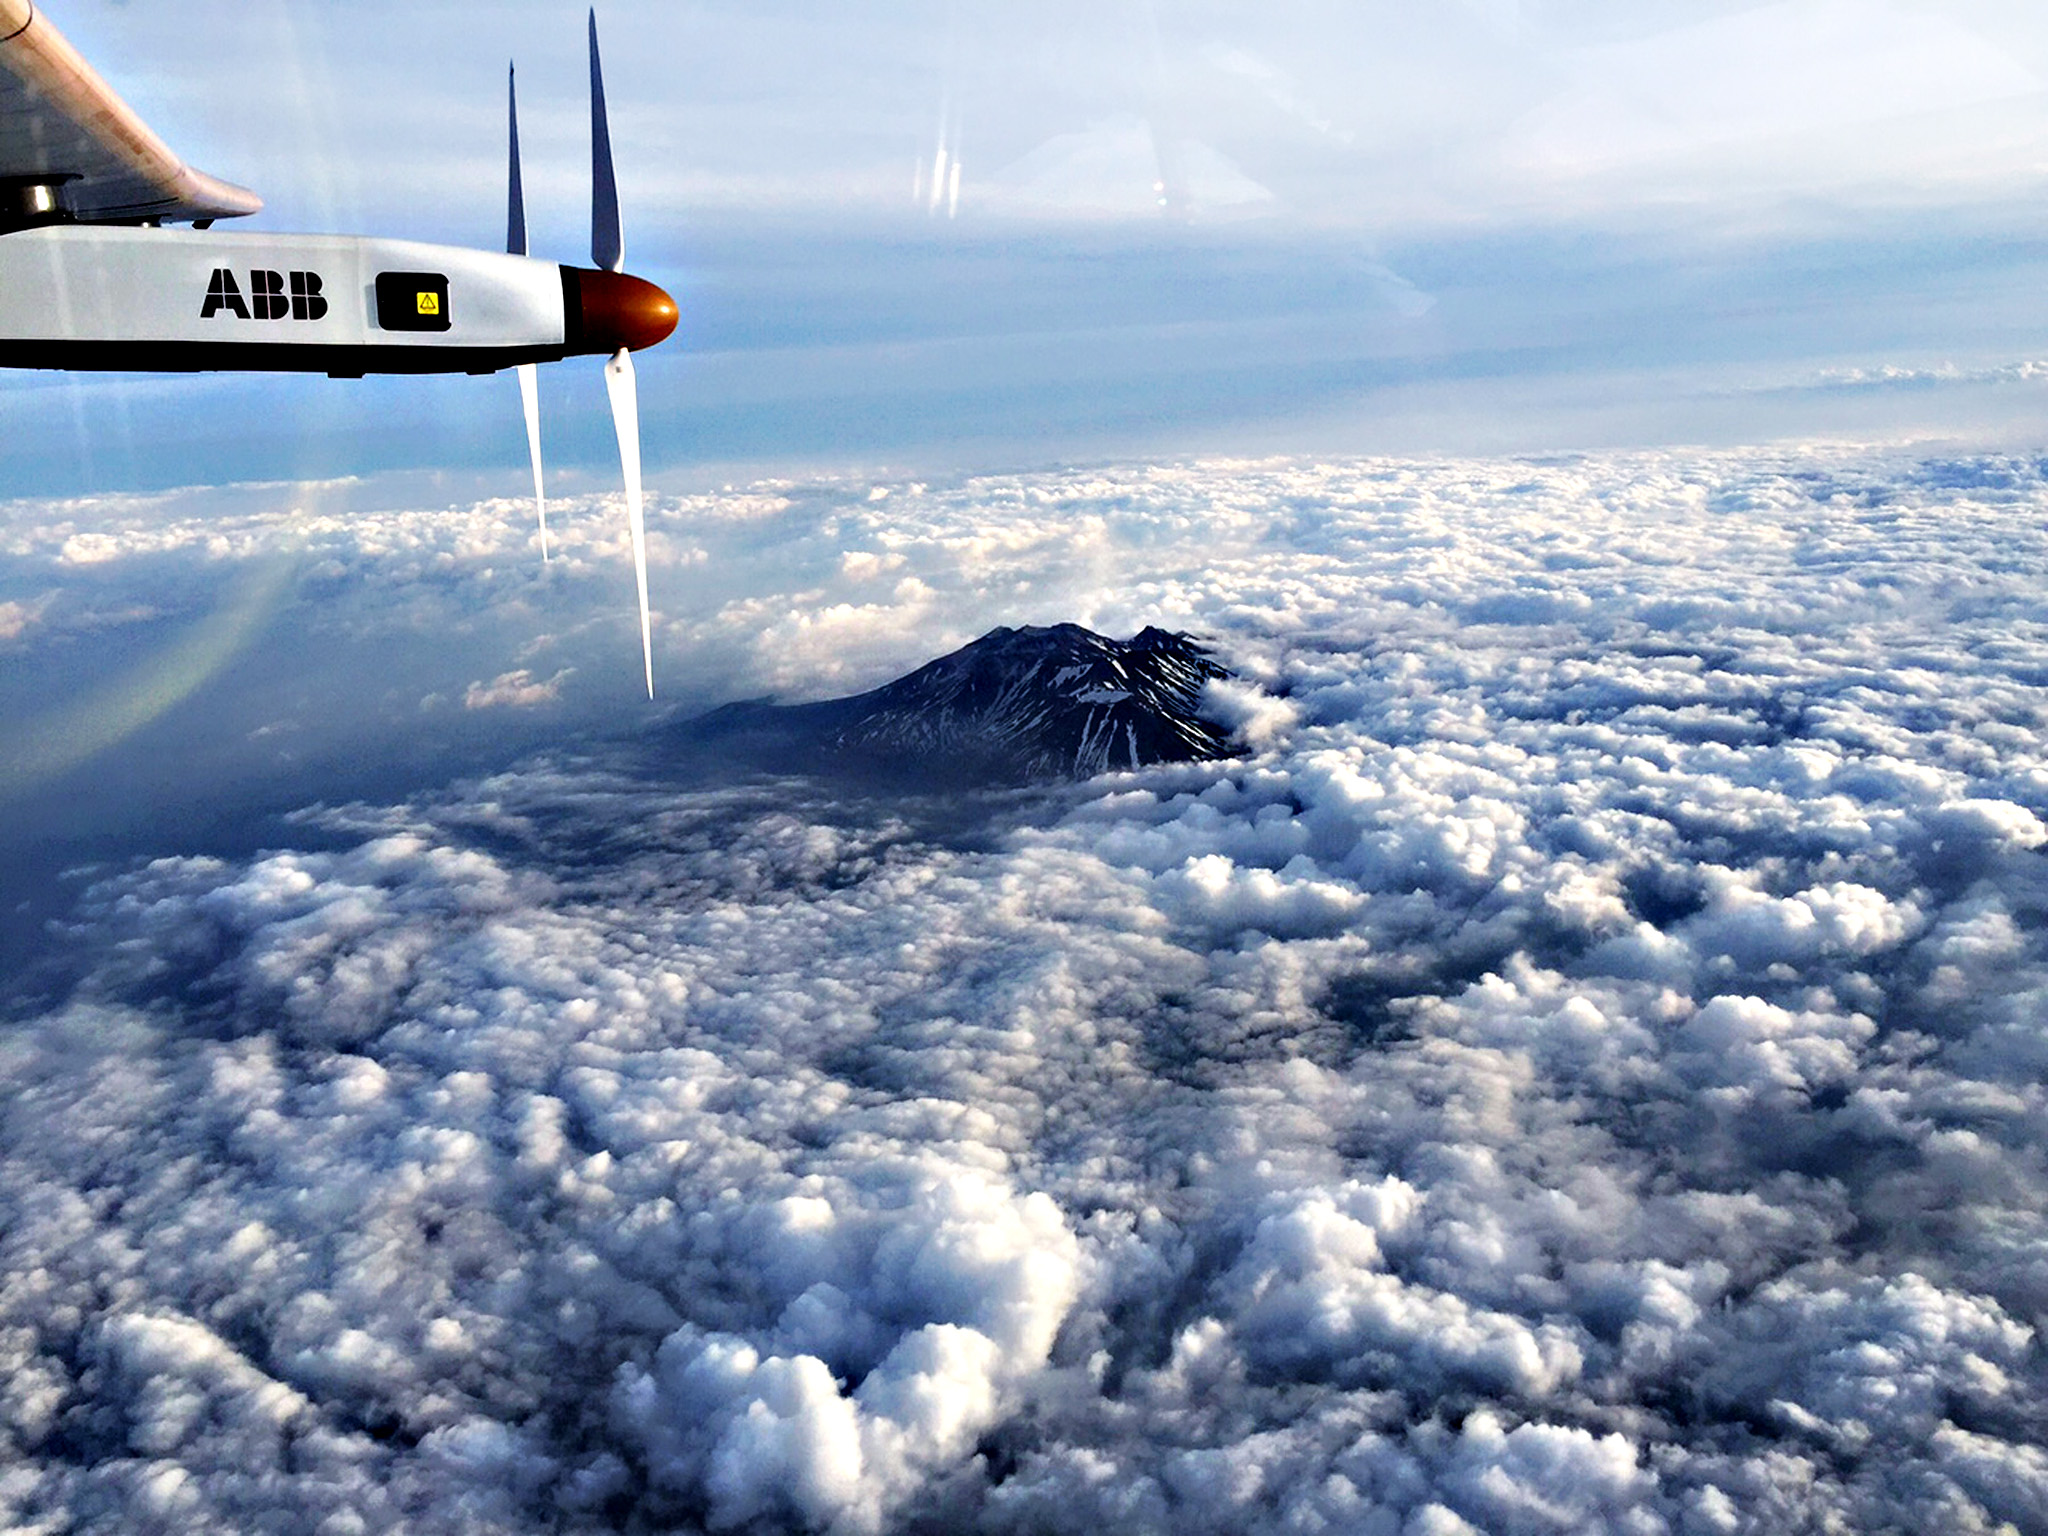 Picture taken by Solar Impulse 2 pilot Andre Borschberg shows a section of the solar powered plane as it flies over the Nagano mountain region in direction of Nagoya, Japan on June 1, 2015.  Solar Impulse 2 will land in the Japanese city of Nagoya, organisers said on June 1, 2015, as bad weather delayed a landmark attempt by a solar plane to cross the Pacific Ocean